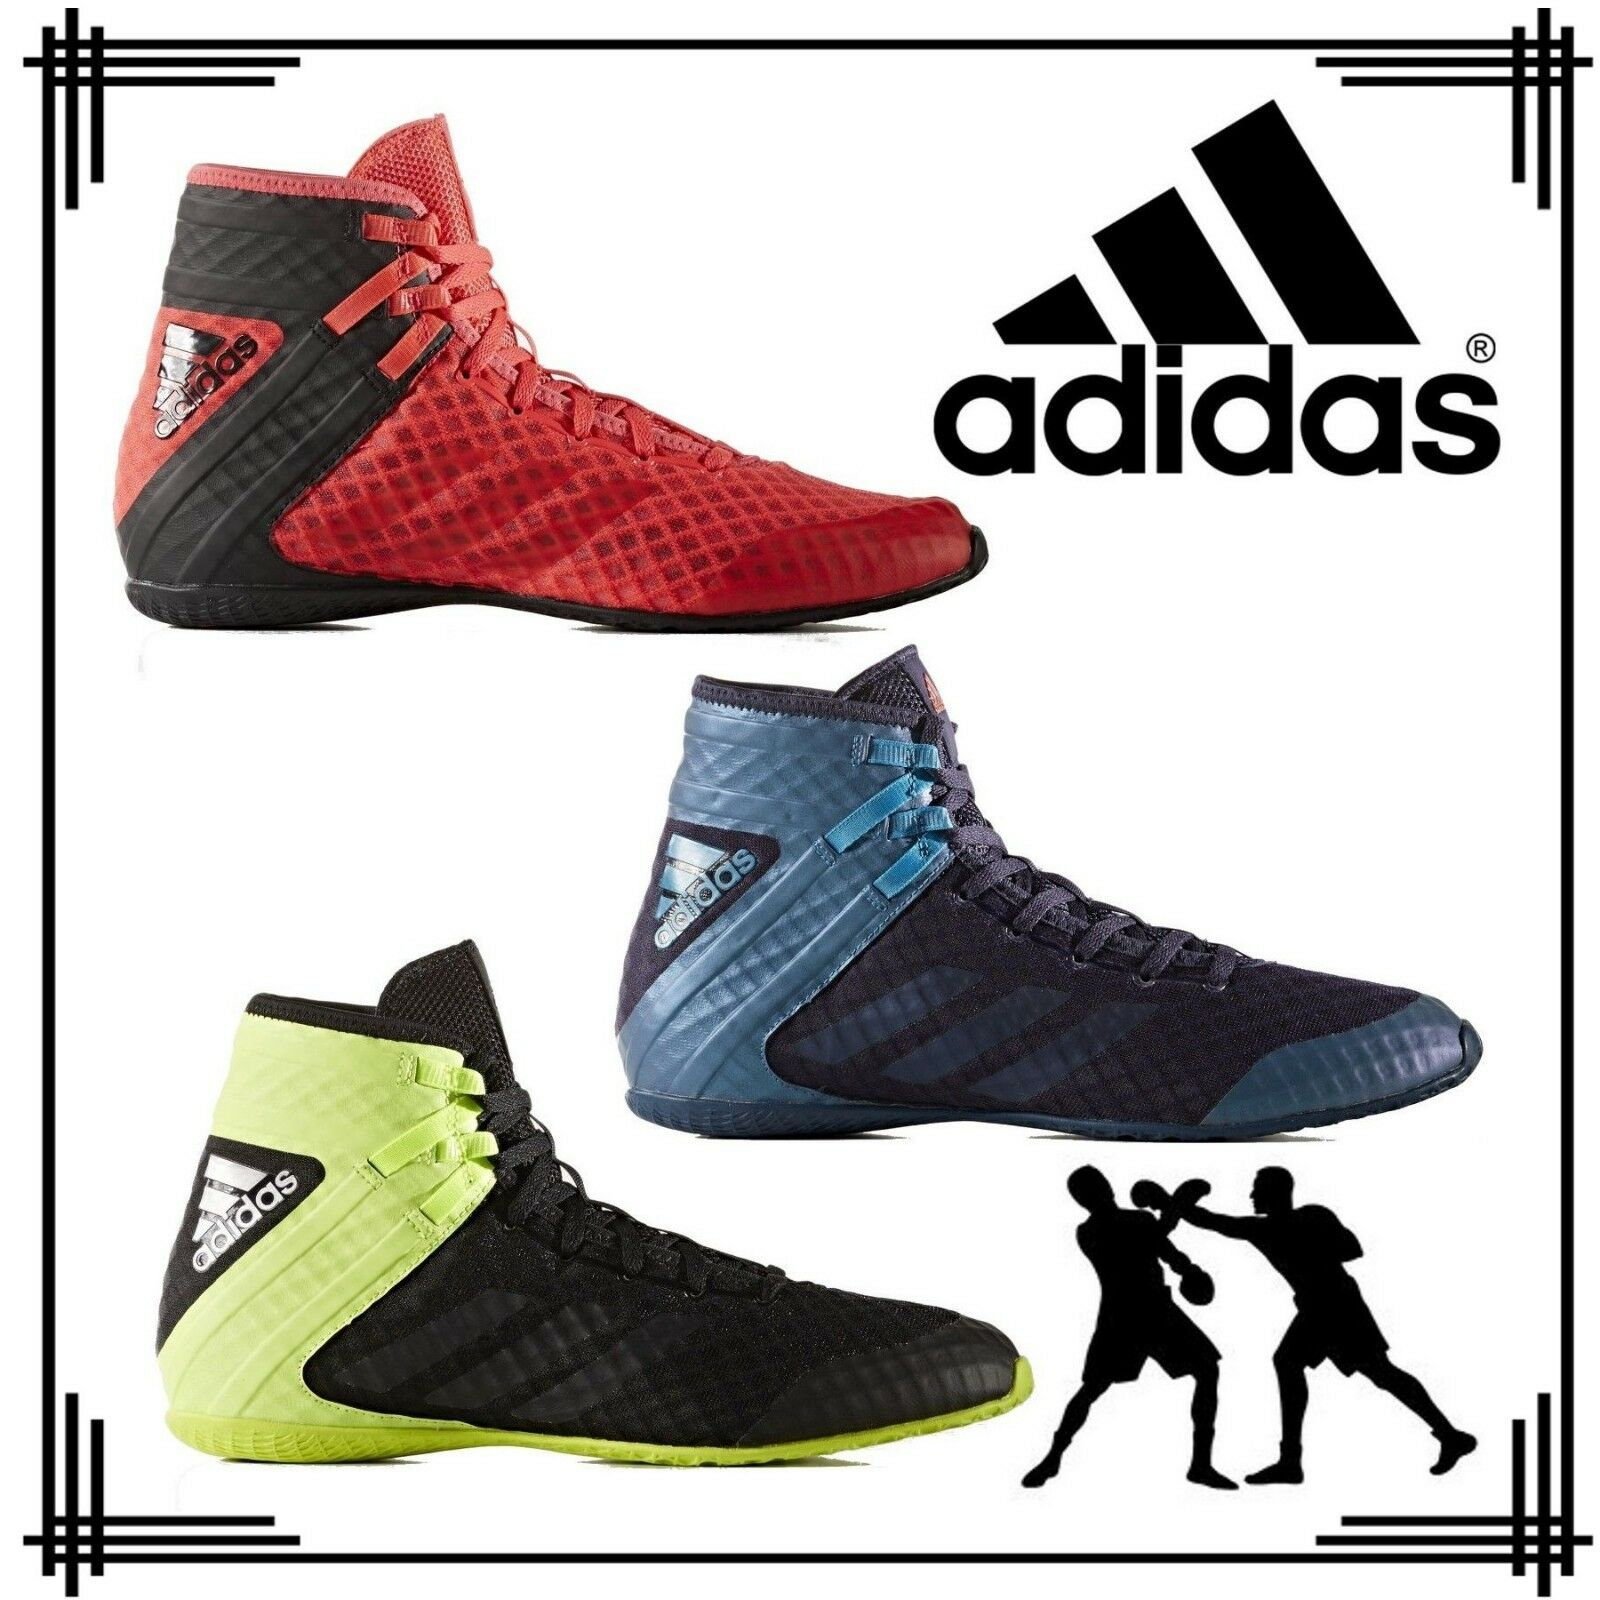 adidas Speedex 16.1 hommes Boys Lace Up Boxing Bottes Sports Retro Style Trainers